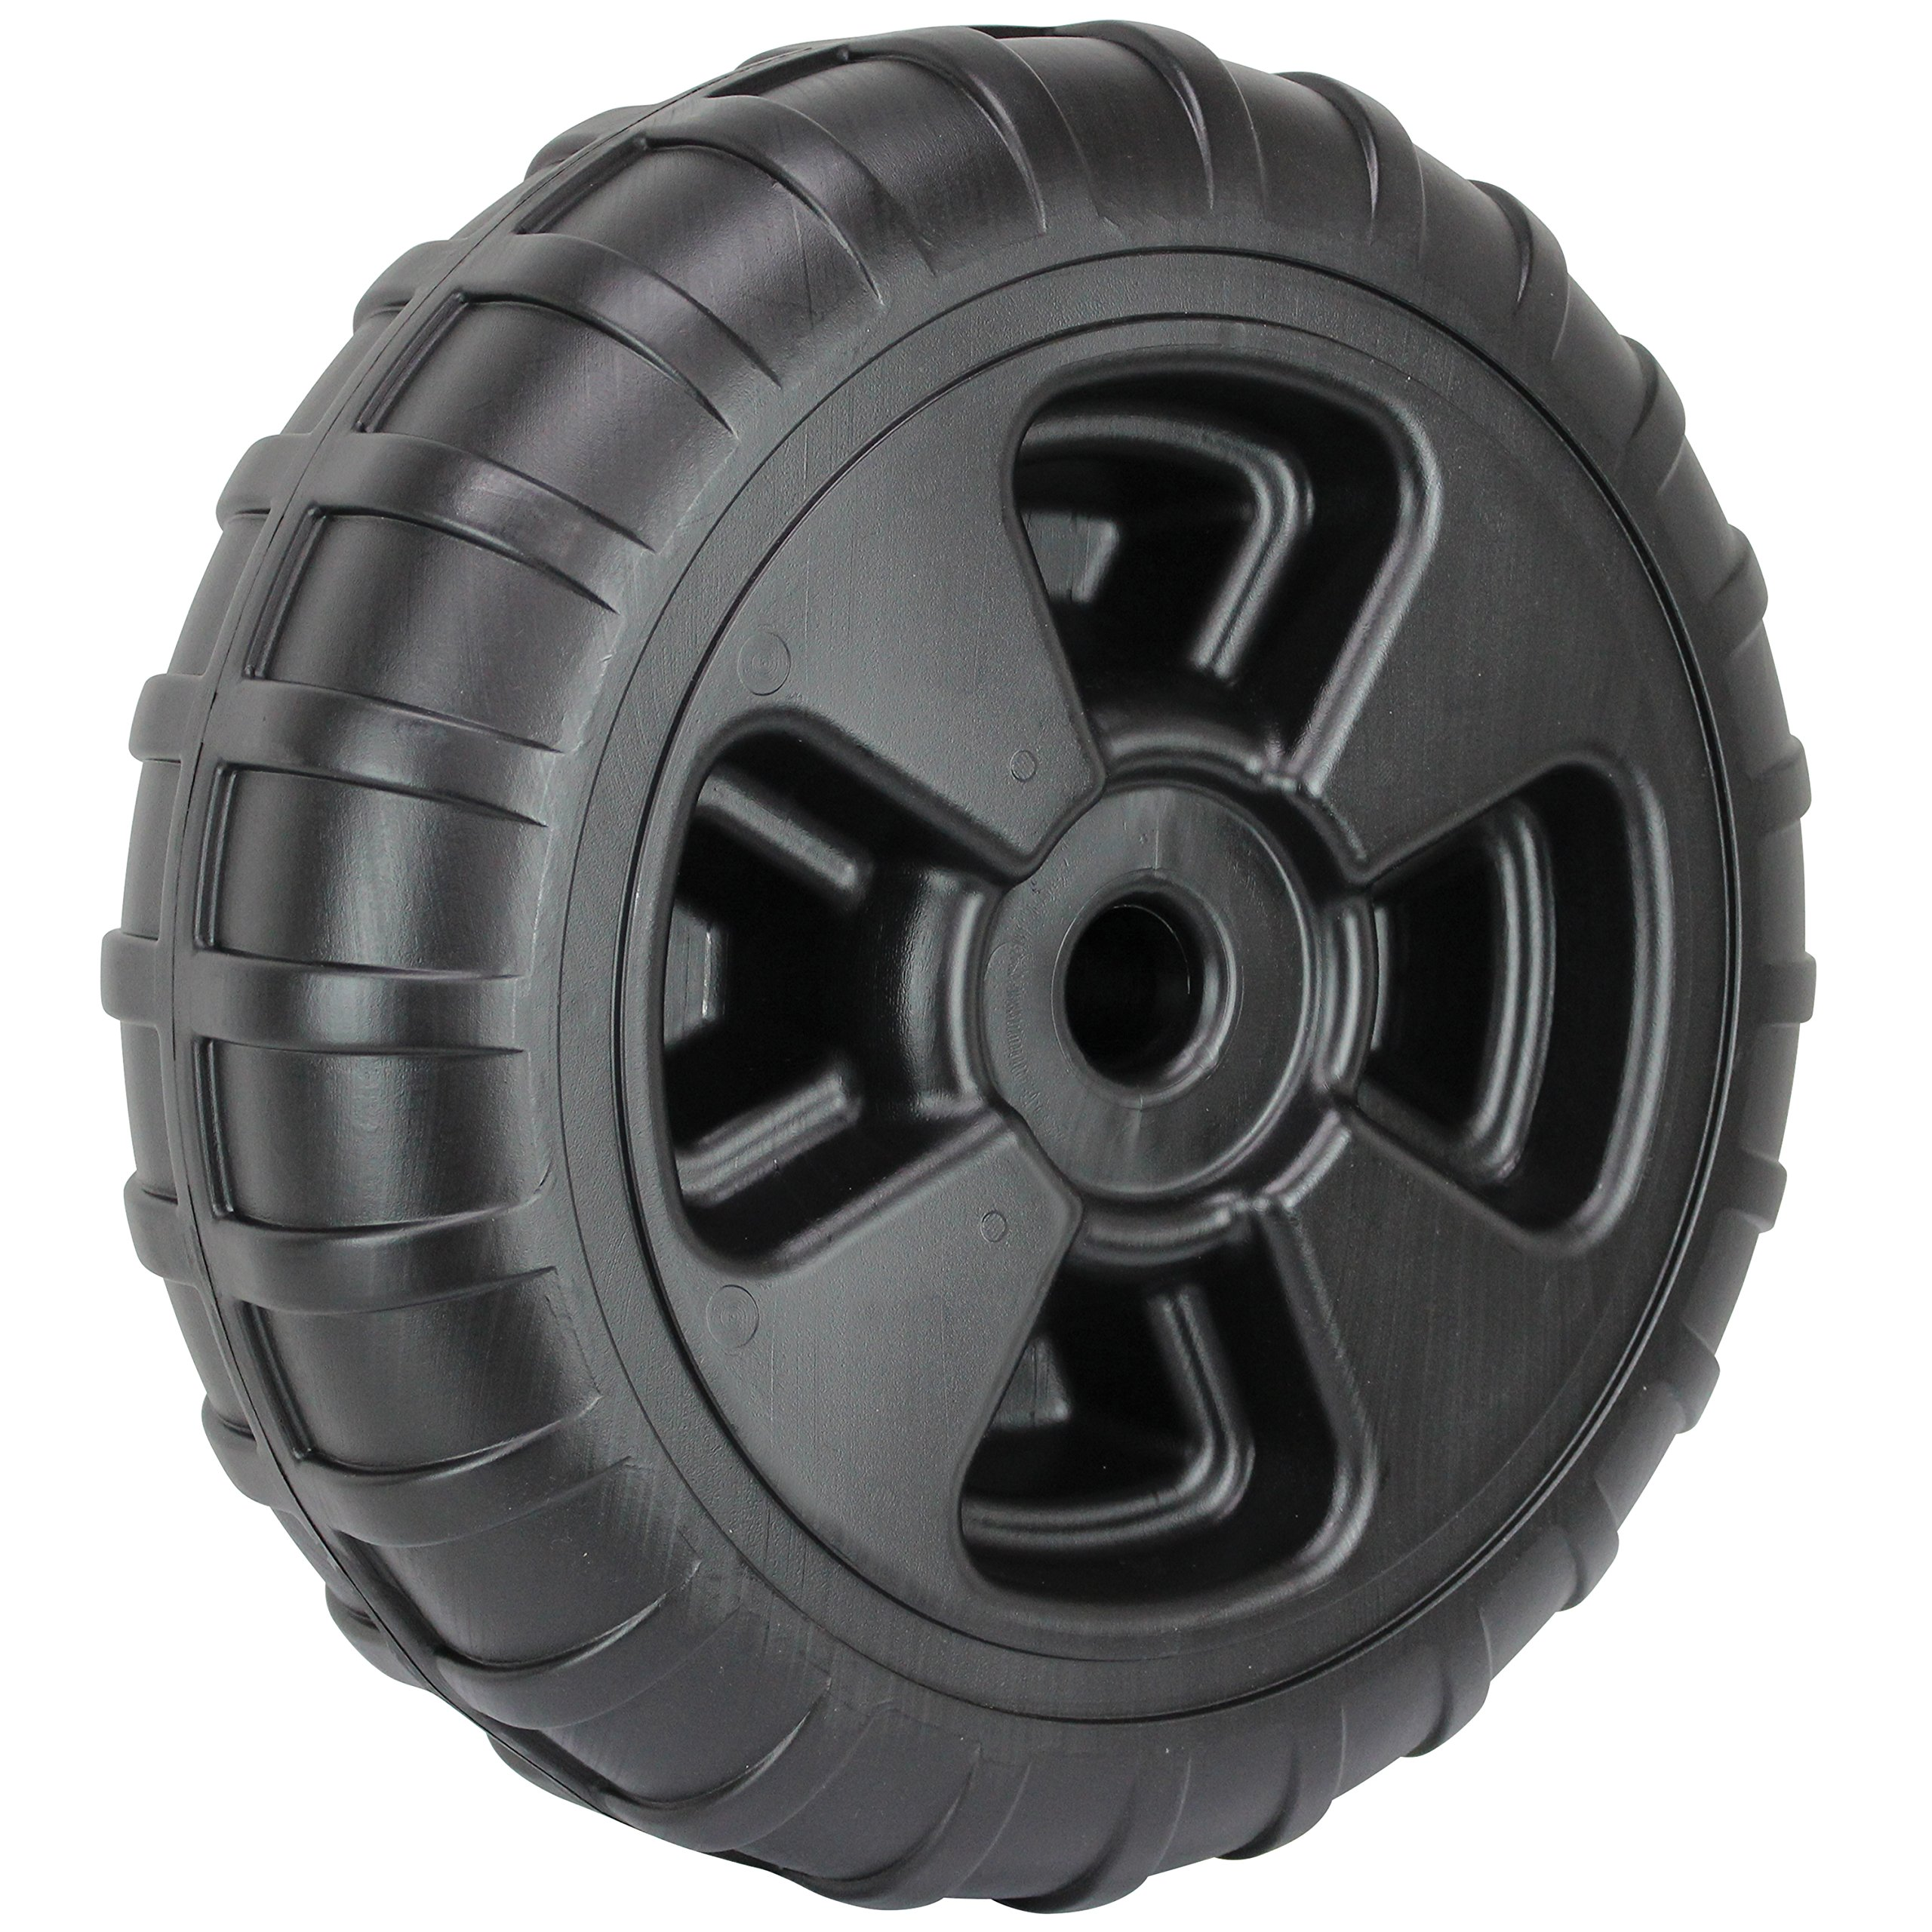 Extreme Max 3005.3729 24'' Heavy-Duty Plastic Roll-In Dock / Boat Lift Wheel by Extreme Max